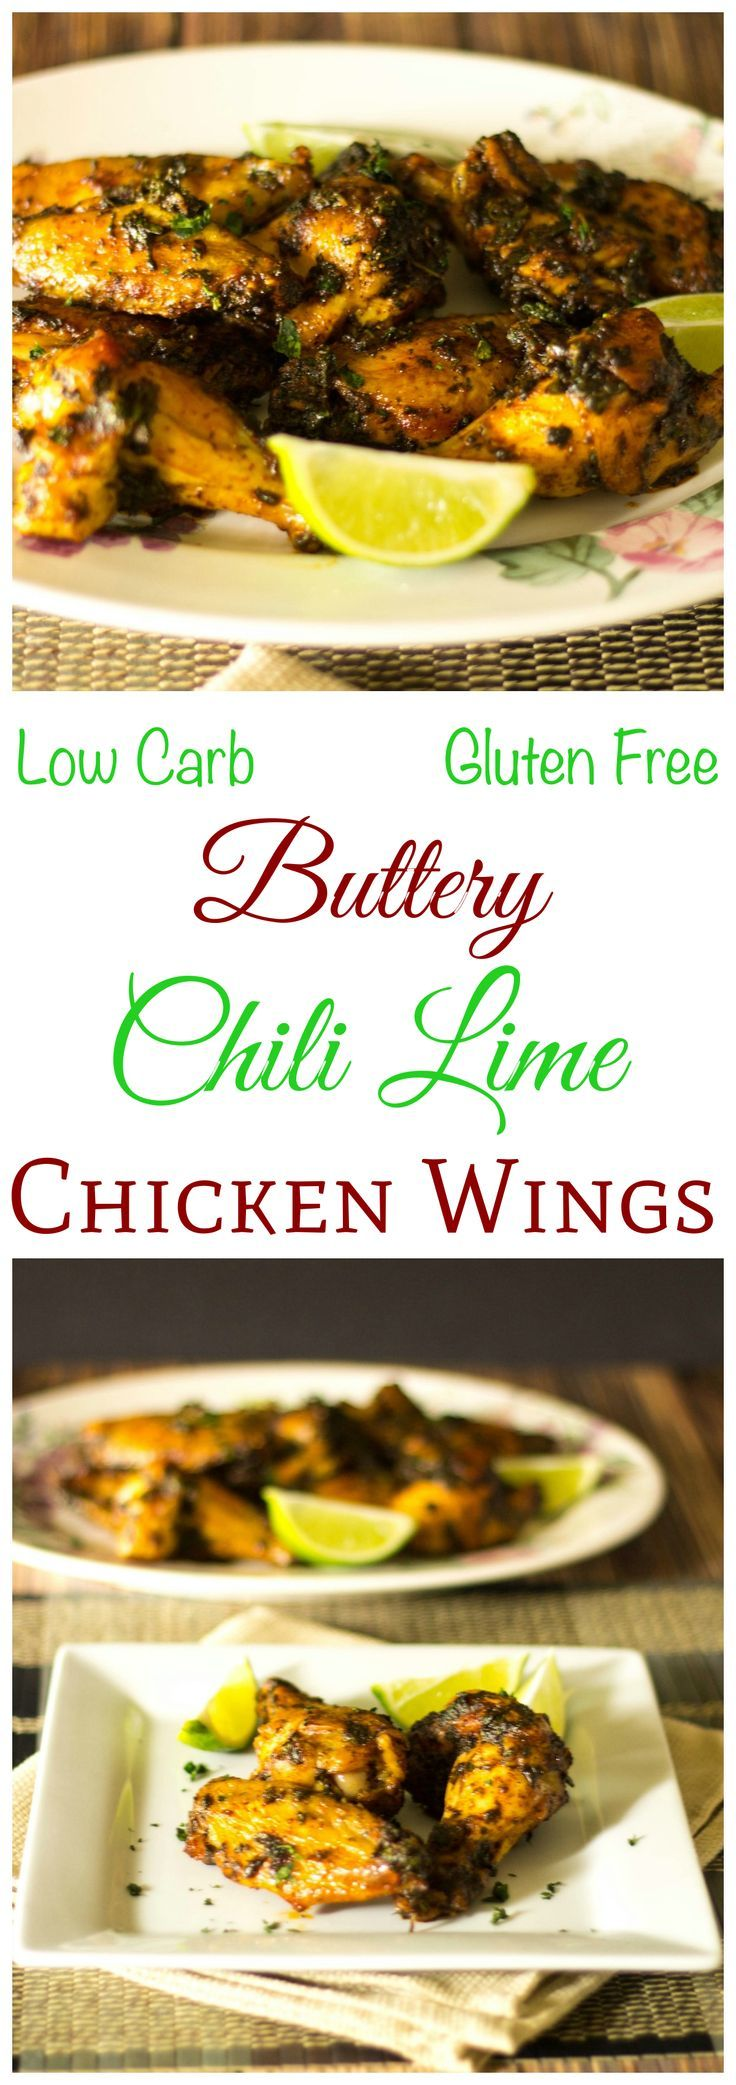 Enjoy these low carb and gluten free buttery chili lime chicken wings at your next cookout or party  These tasty wings make a great appetizer or main dish